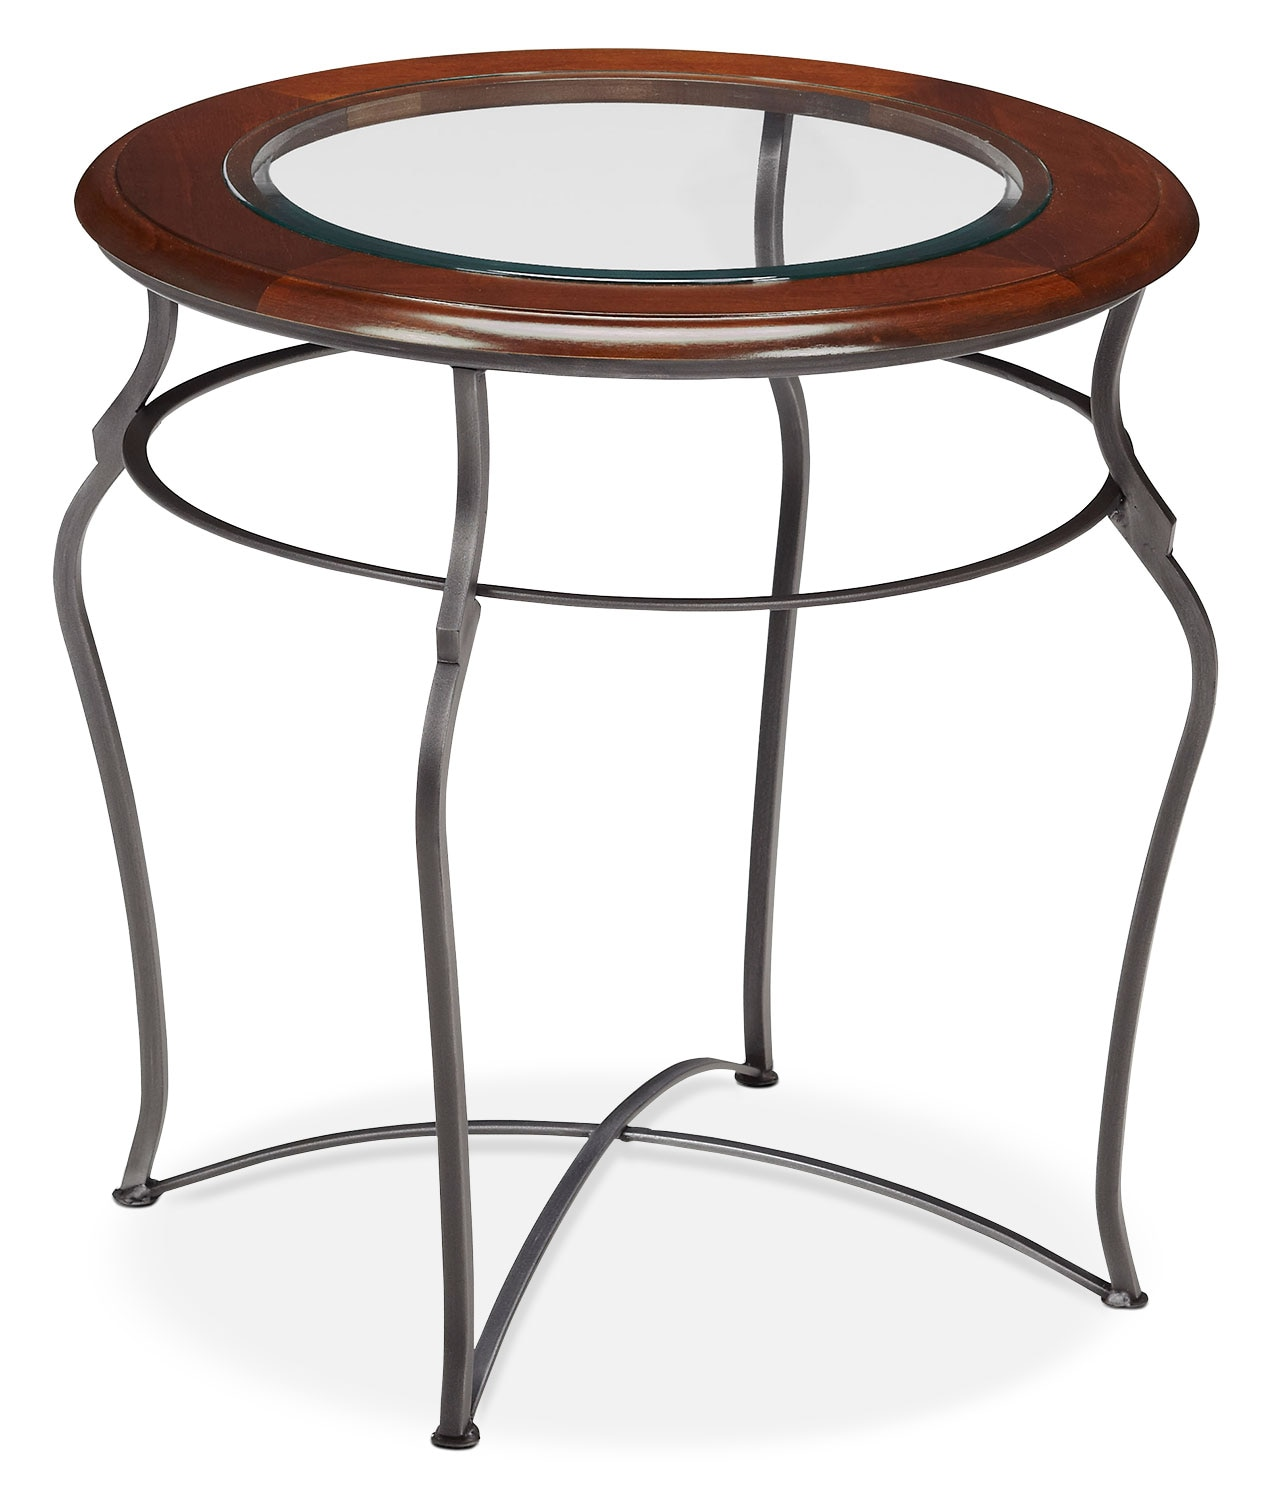 Online Only - Adele End Table - Glass Top with Pewter Base